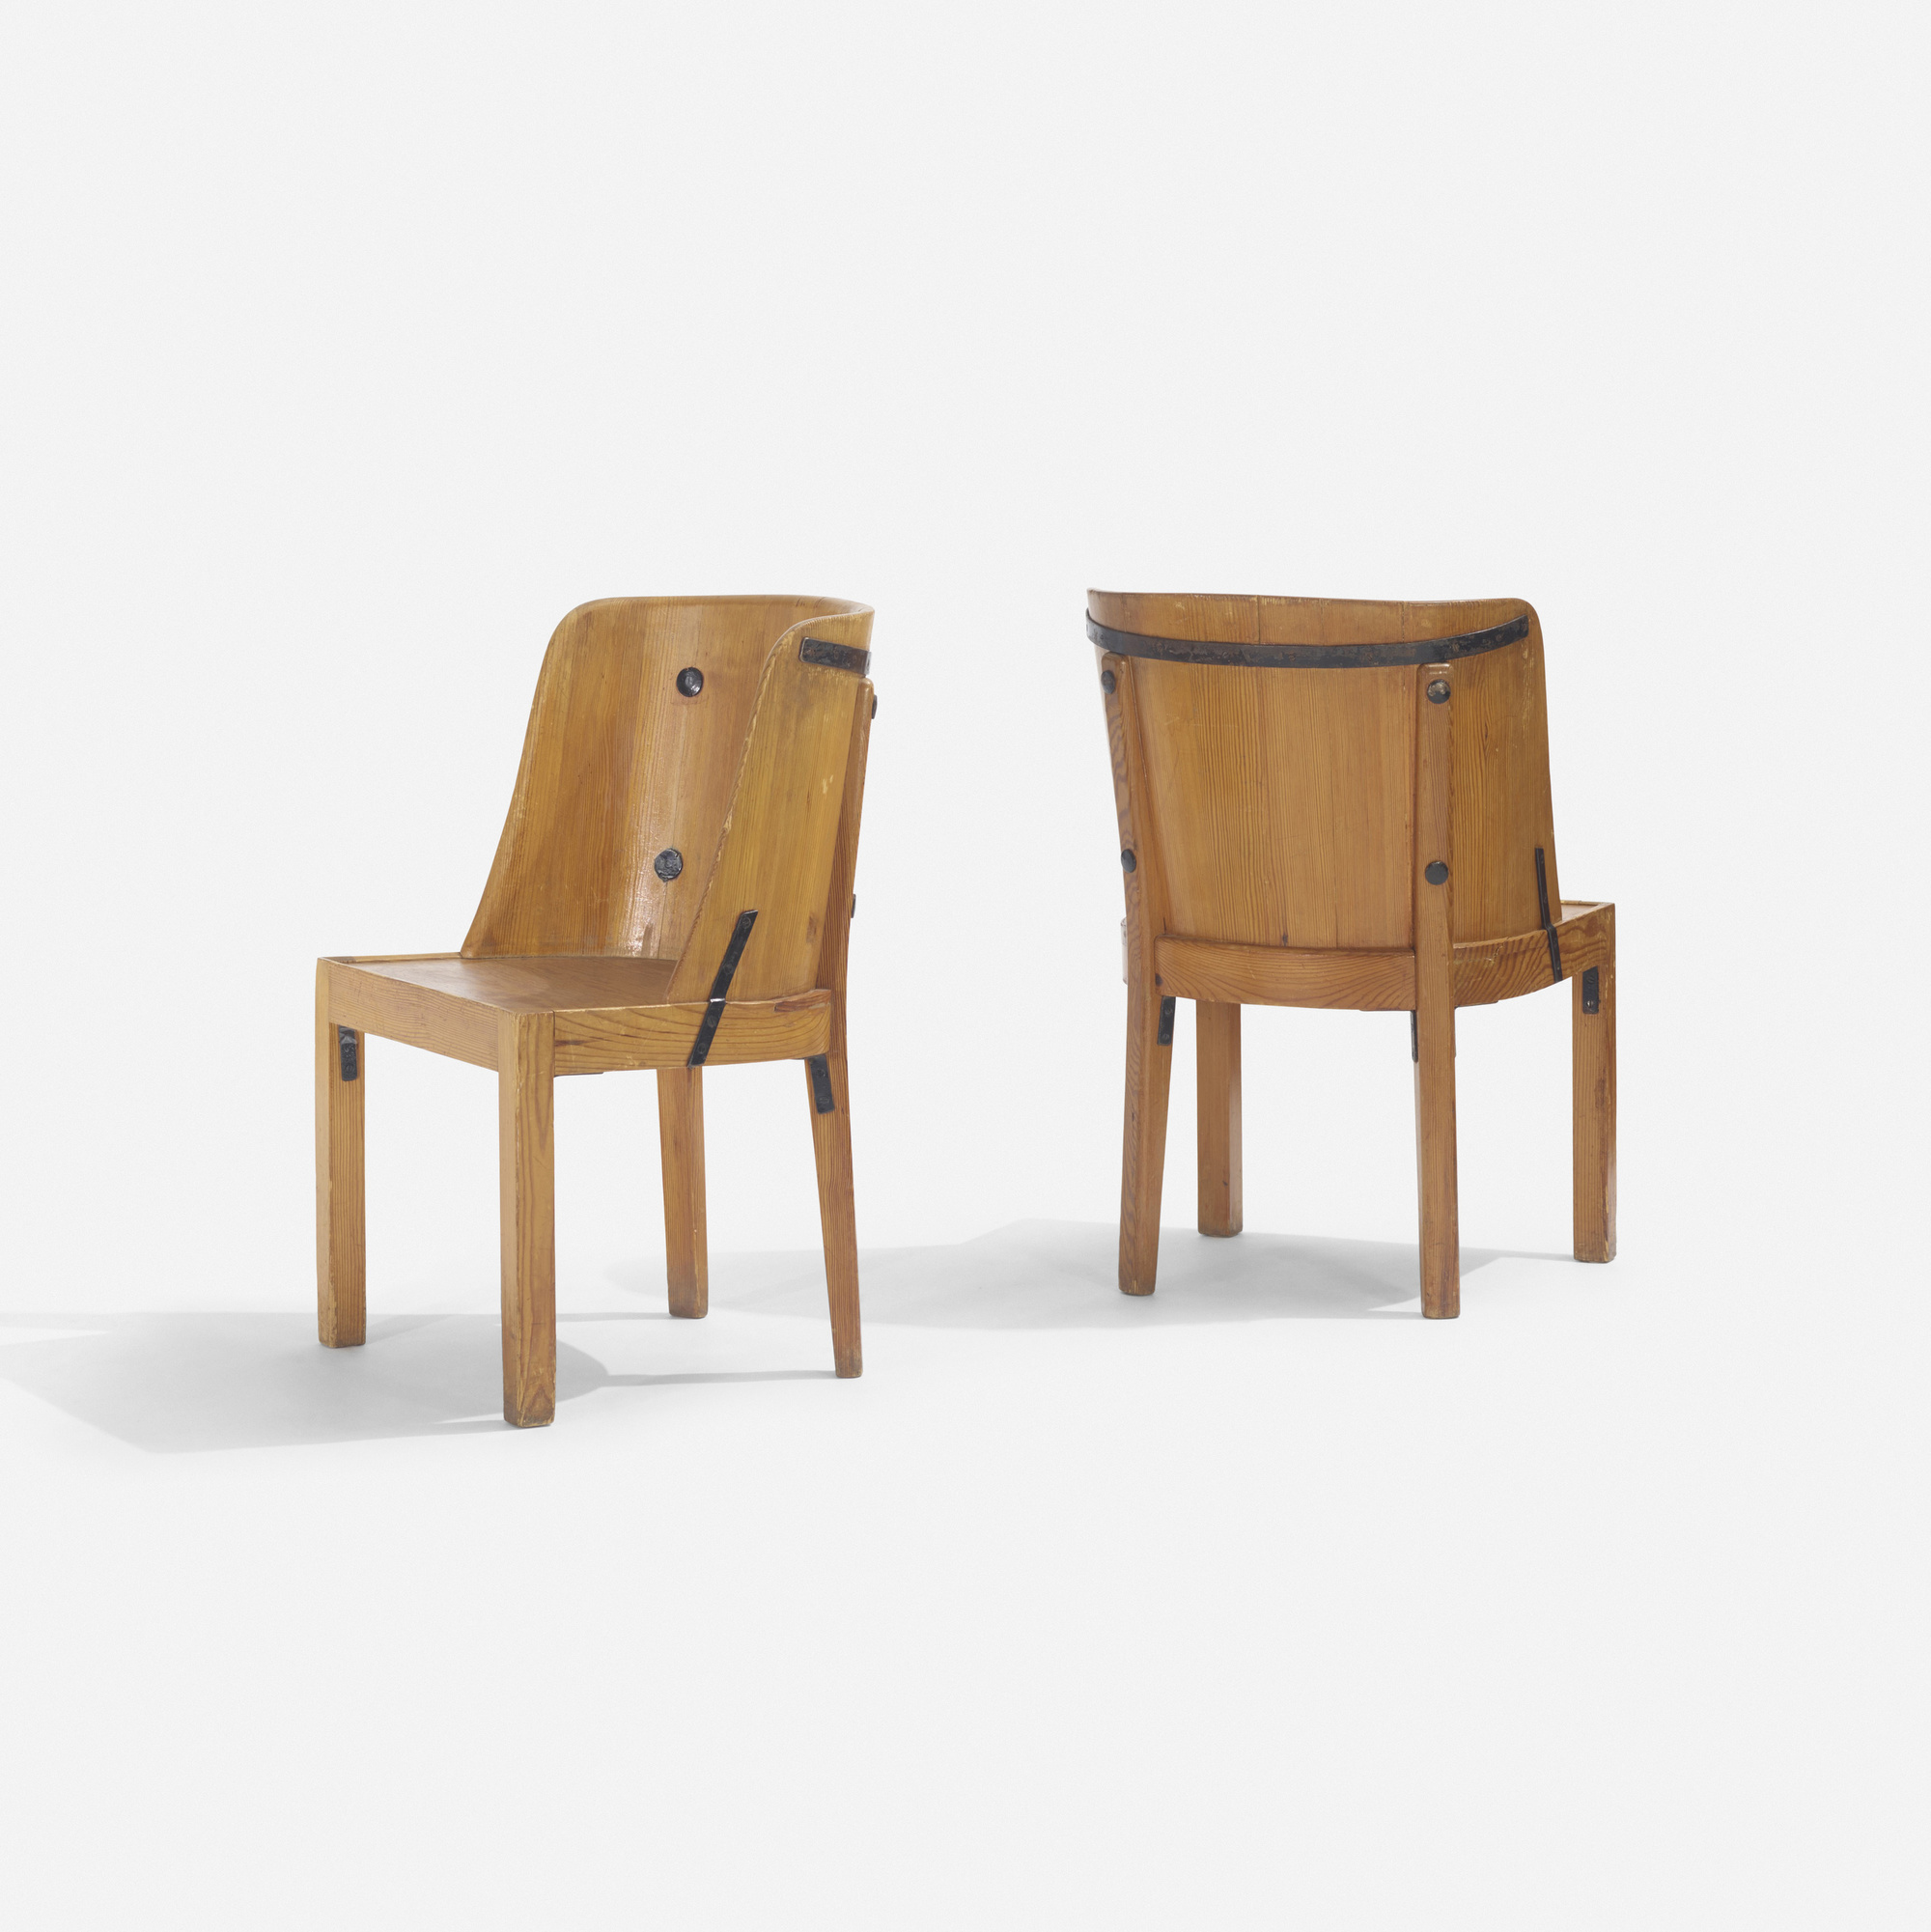 260: Axel Einar Hjorth / Lovö chairs, pair (1 of 3)